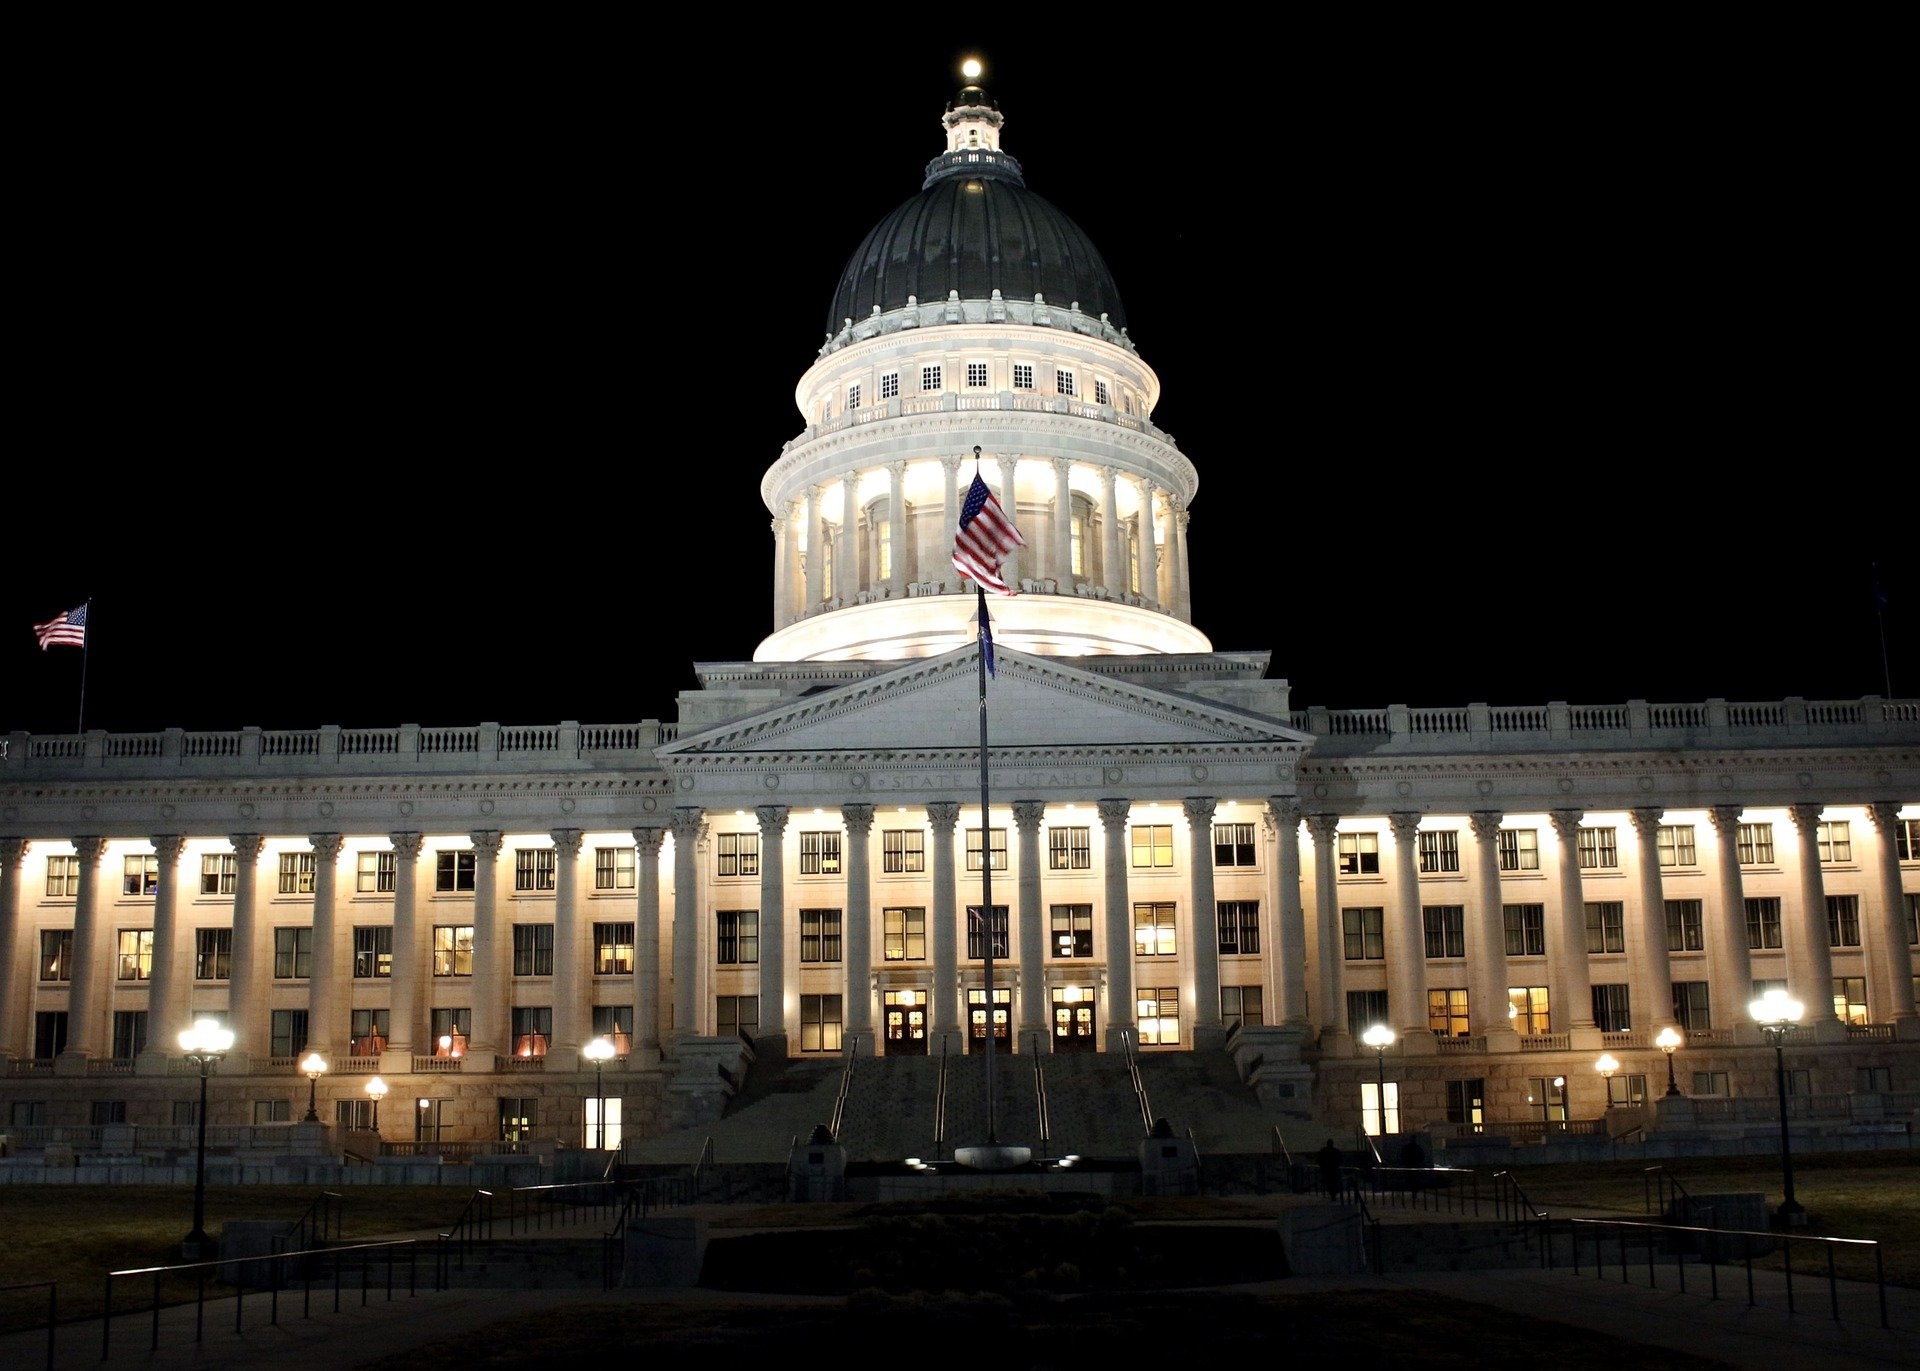 Utah State Capitol at night